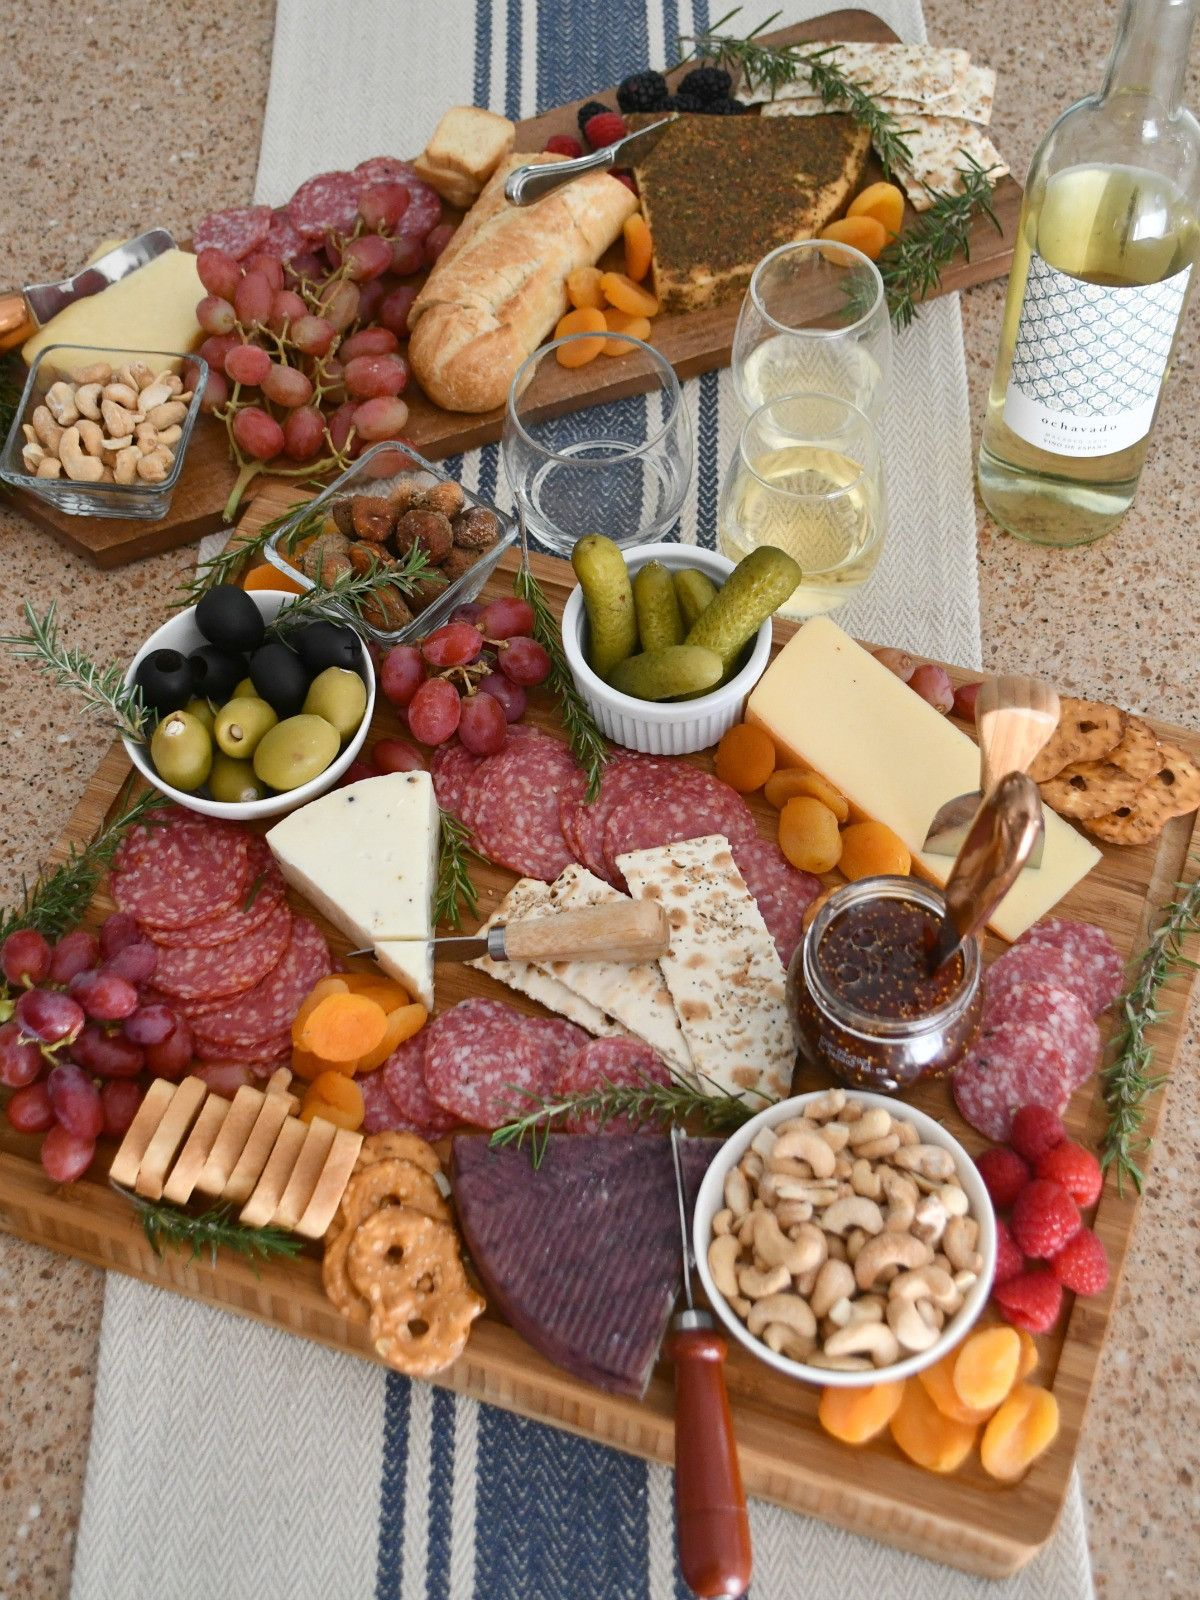 Make the Best Easy Charcuterie Board in Just Minutes! #charcuterieboard